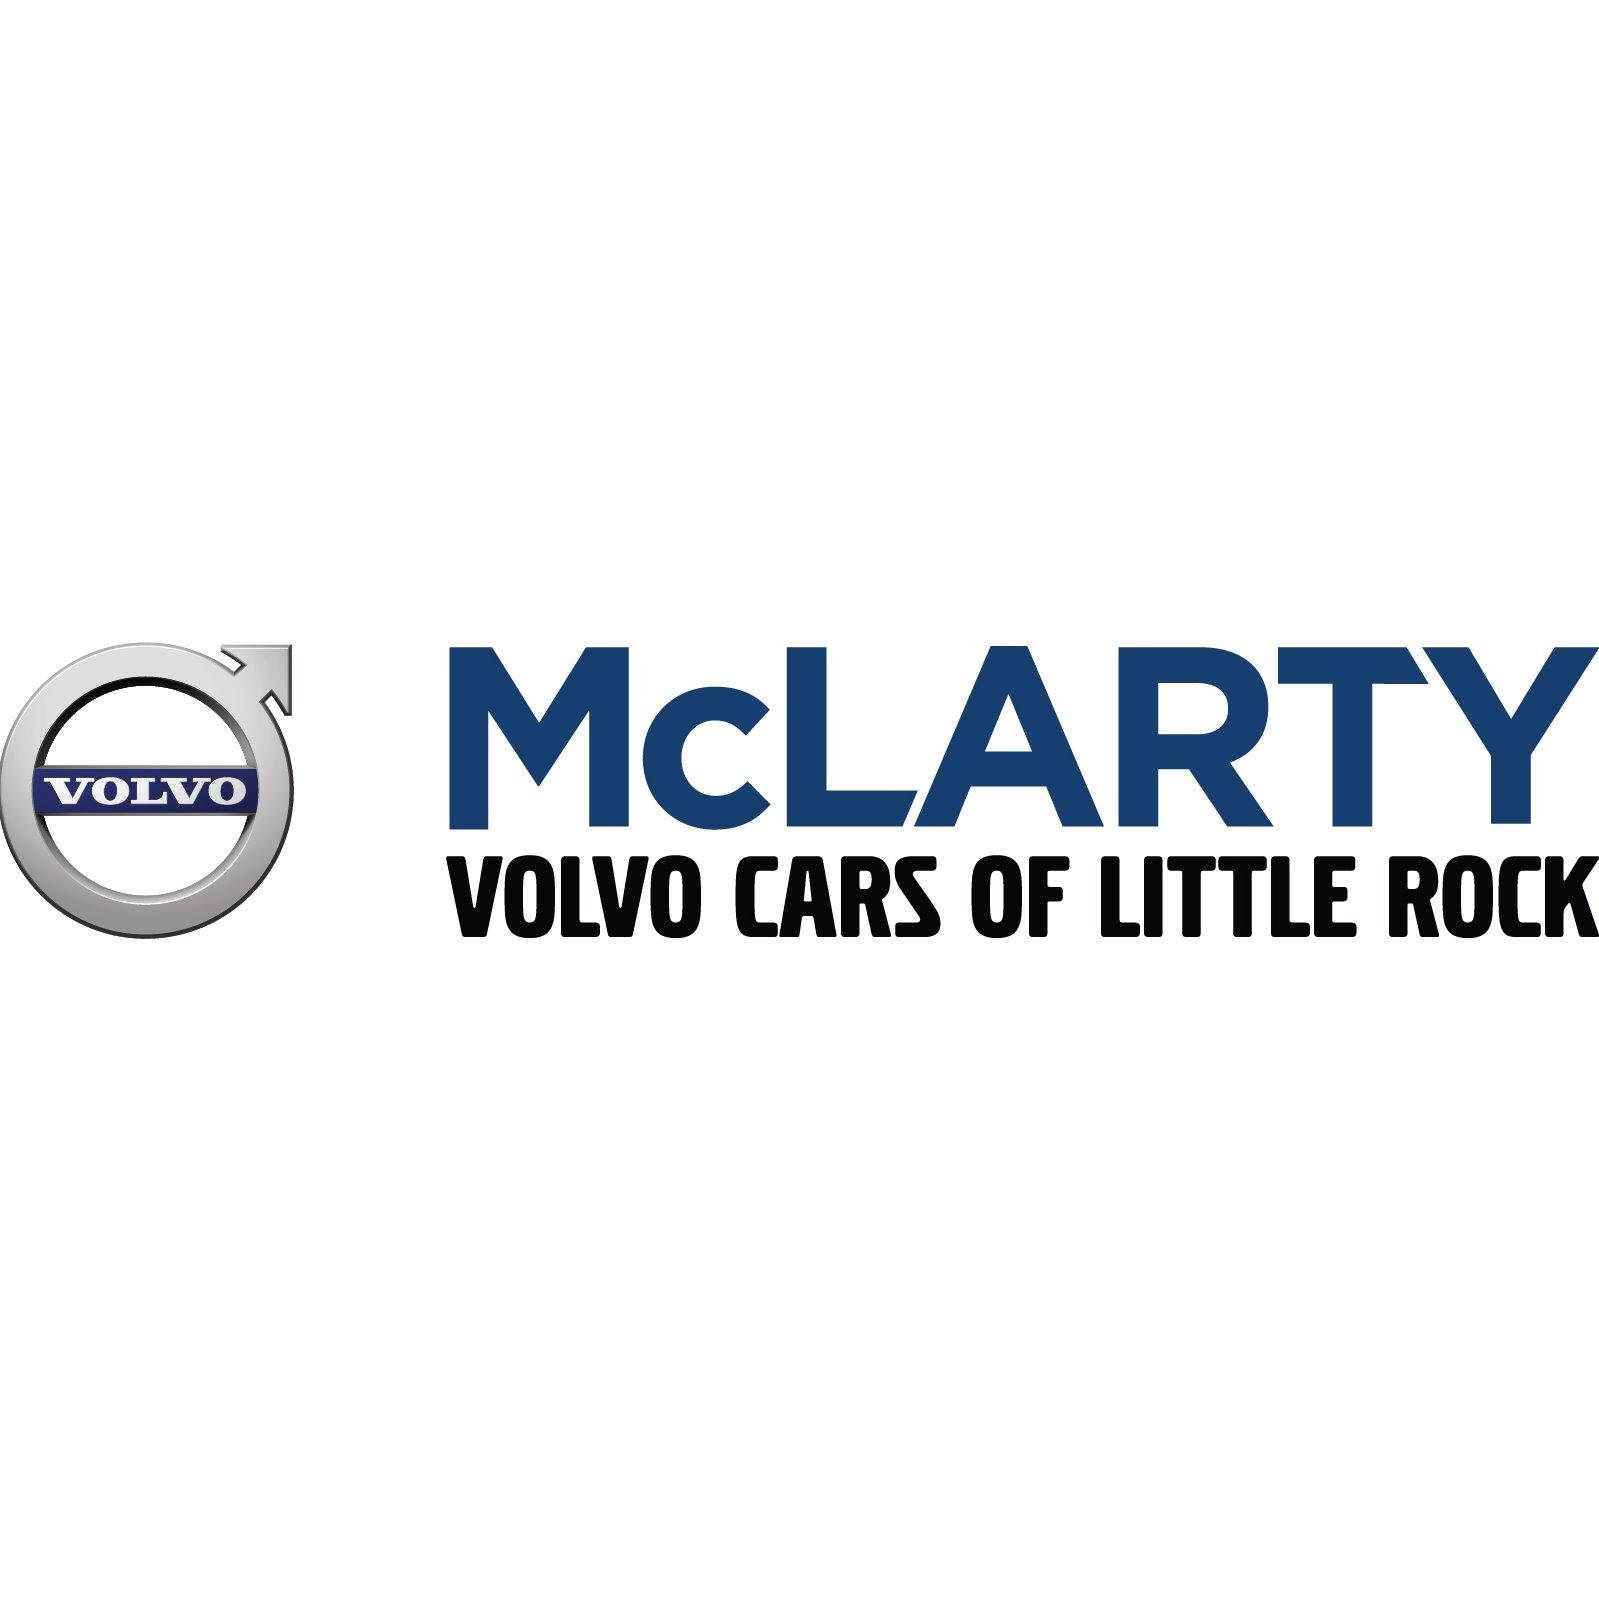 Volvo Auto Sales: McLarty Volvo Cars Of Little Rock